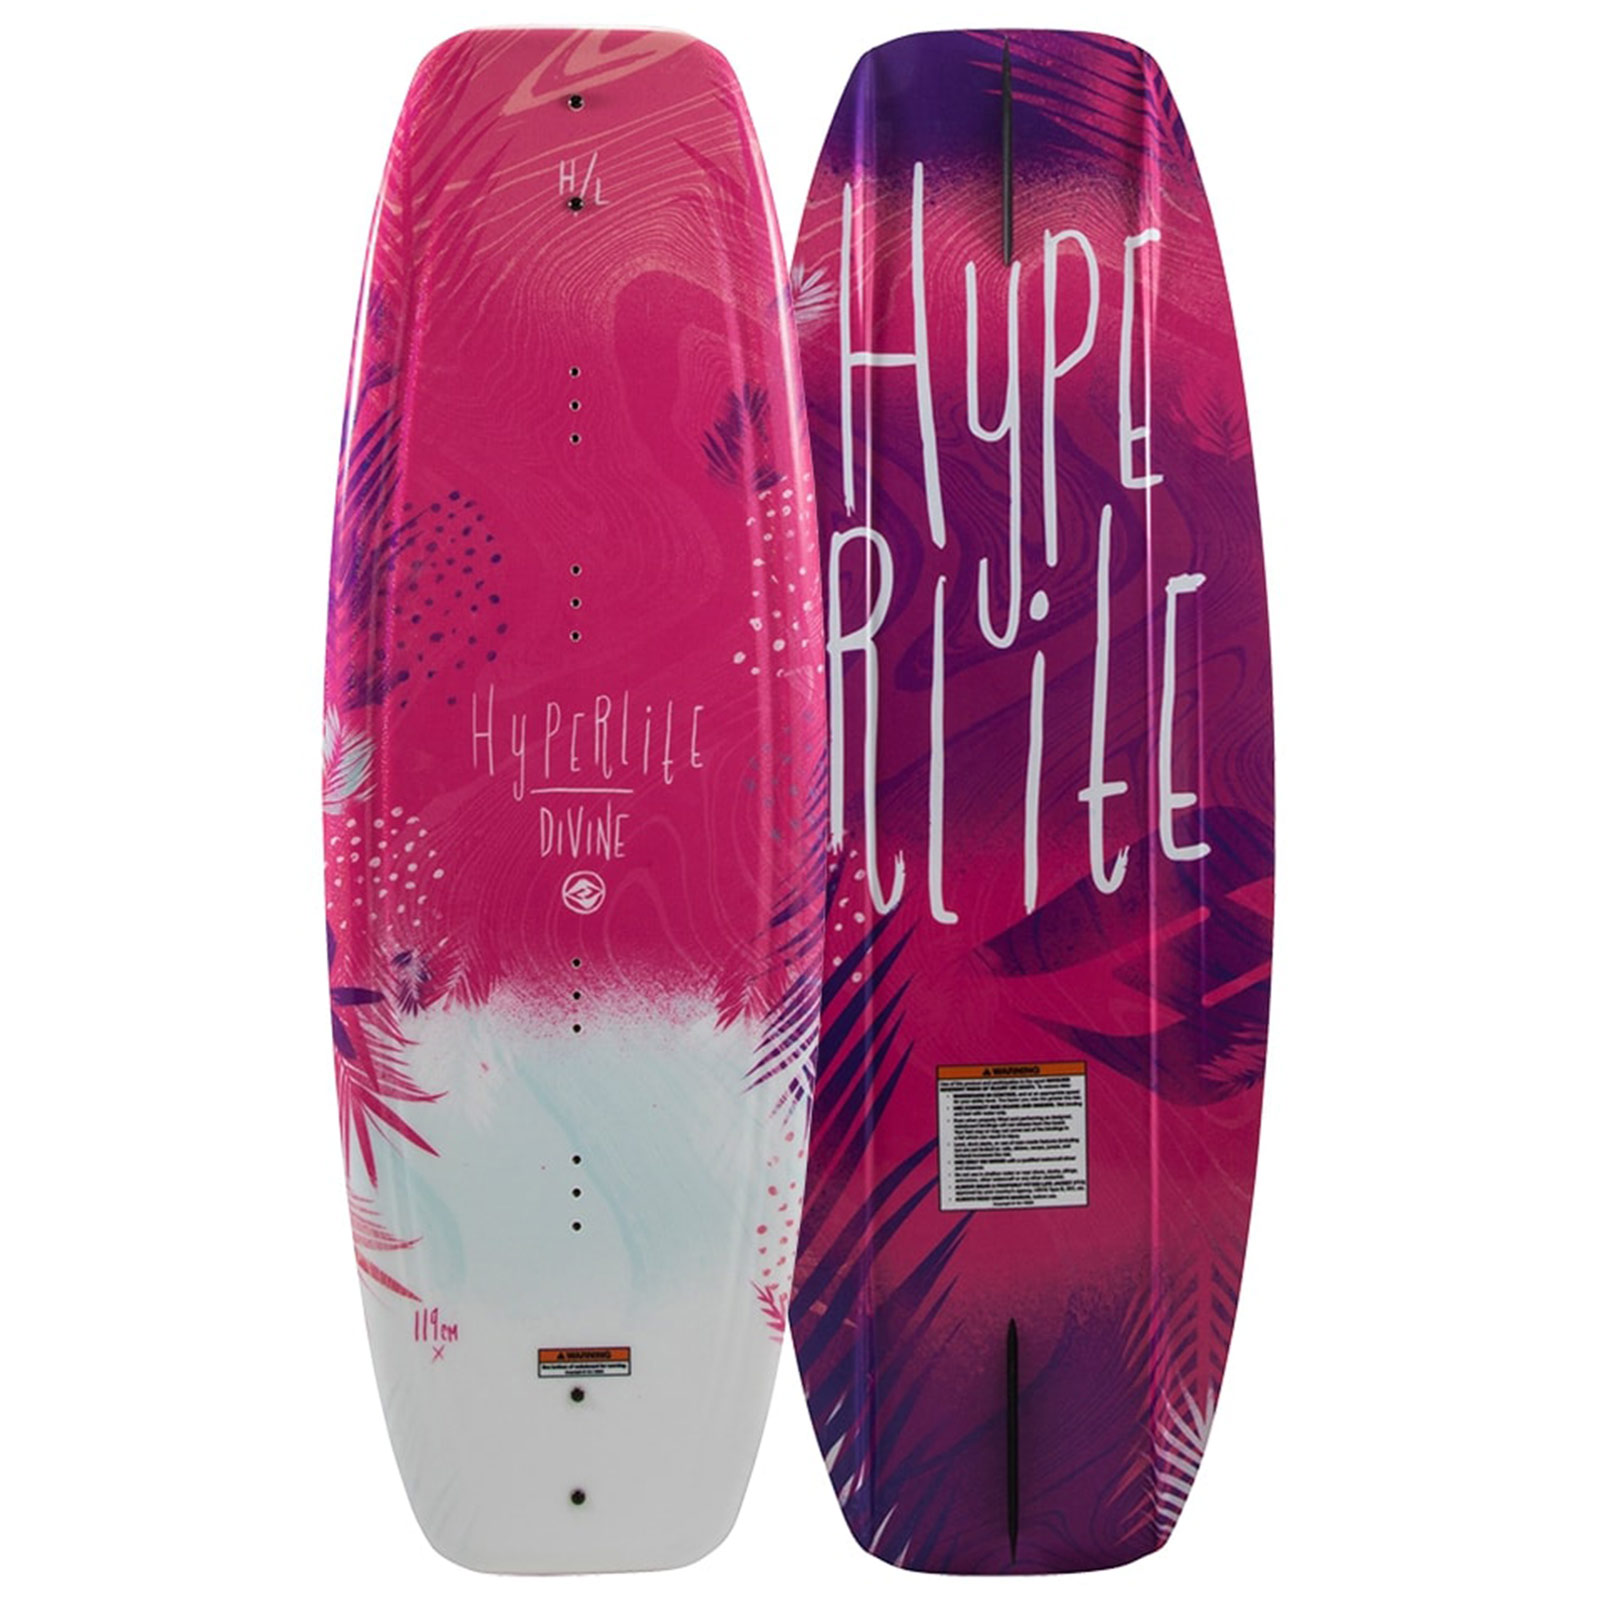 PLACA WAKEBOARD DIVINE 128 JR. WAKEBOARD HYPERLITE 2019